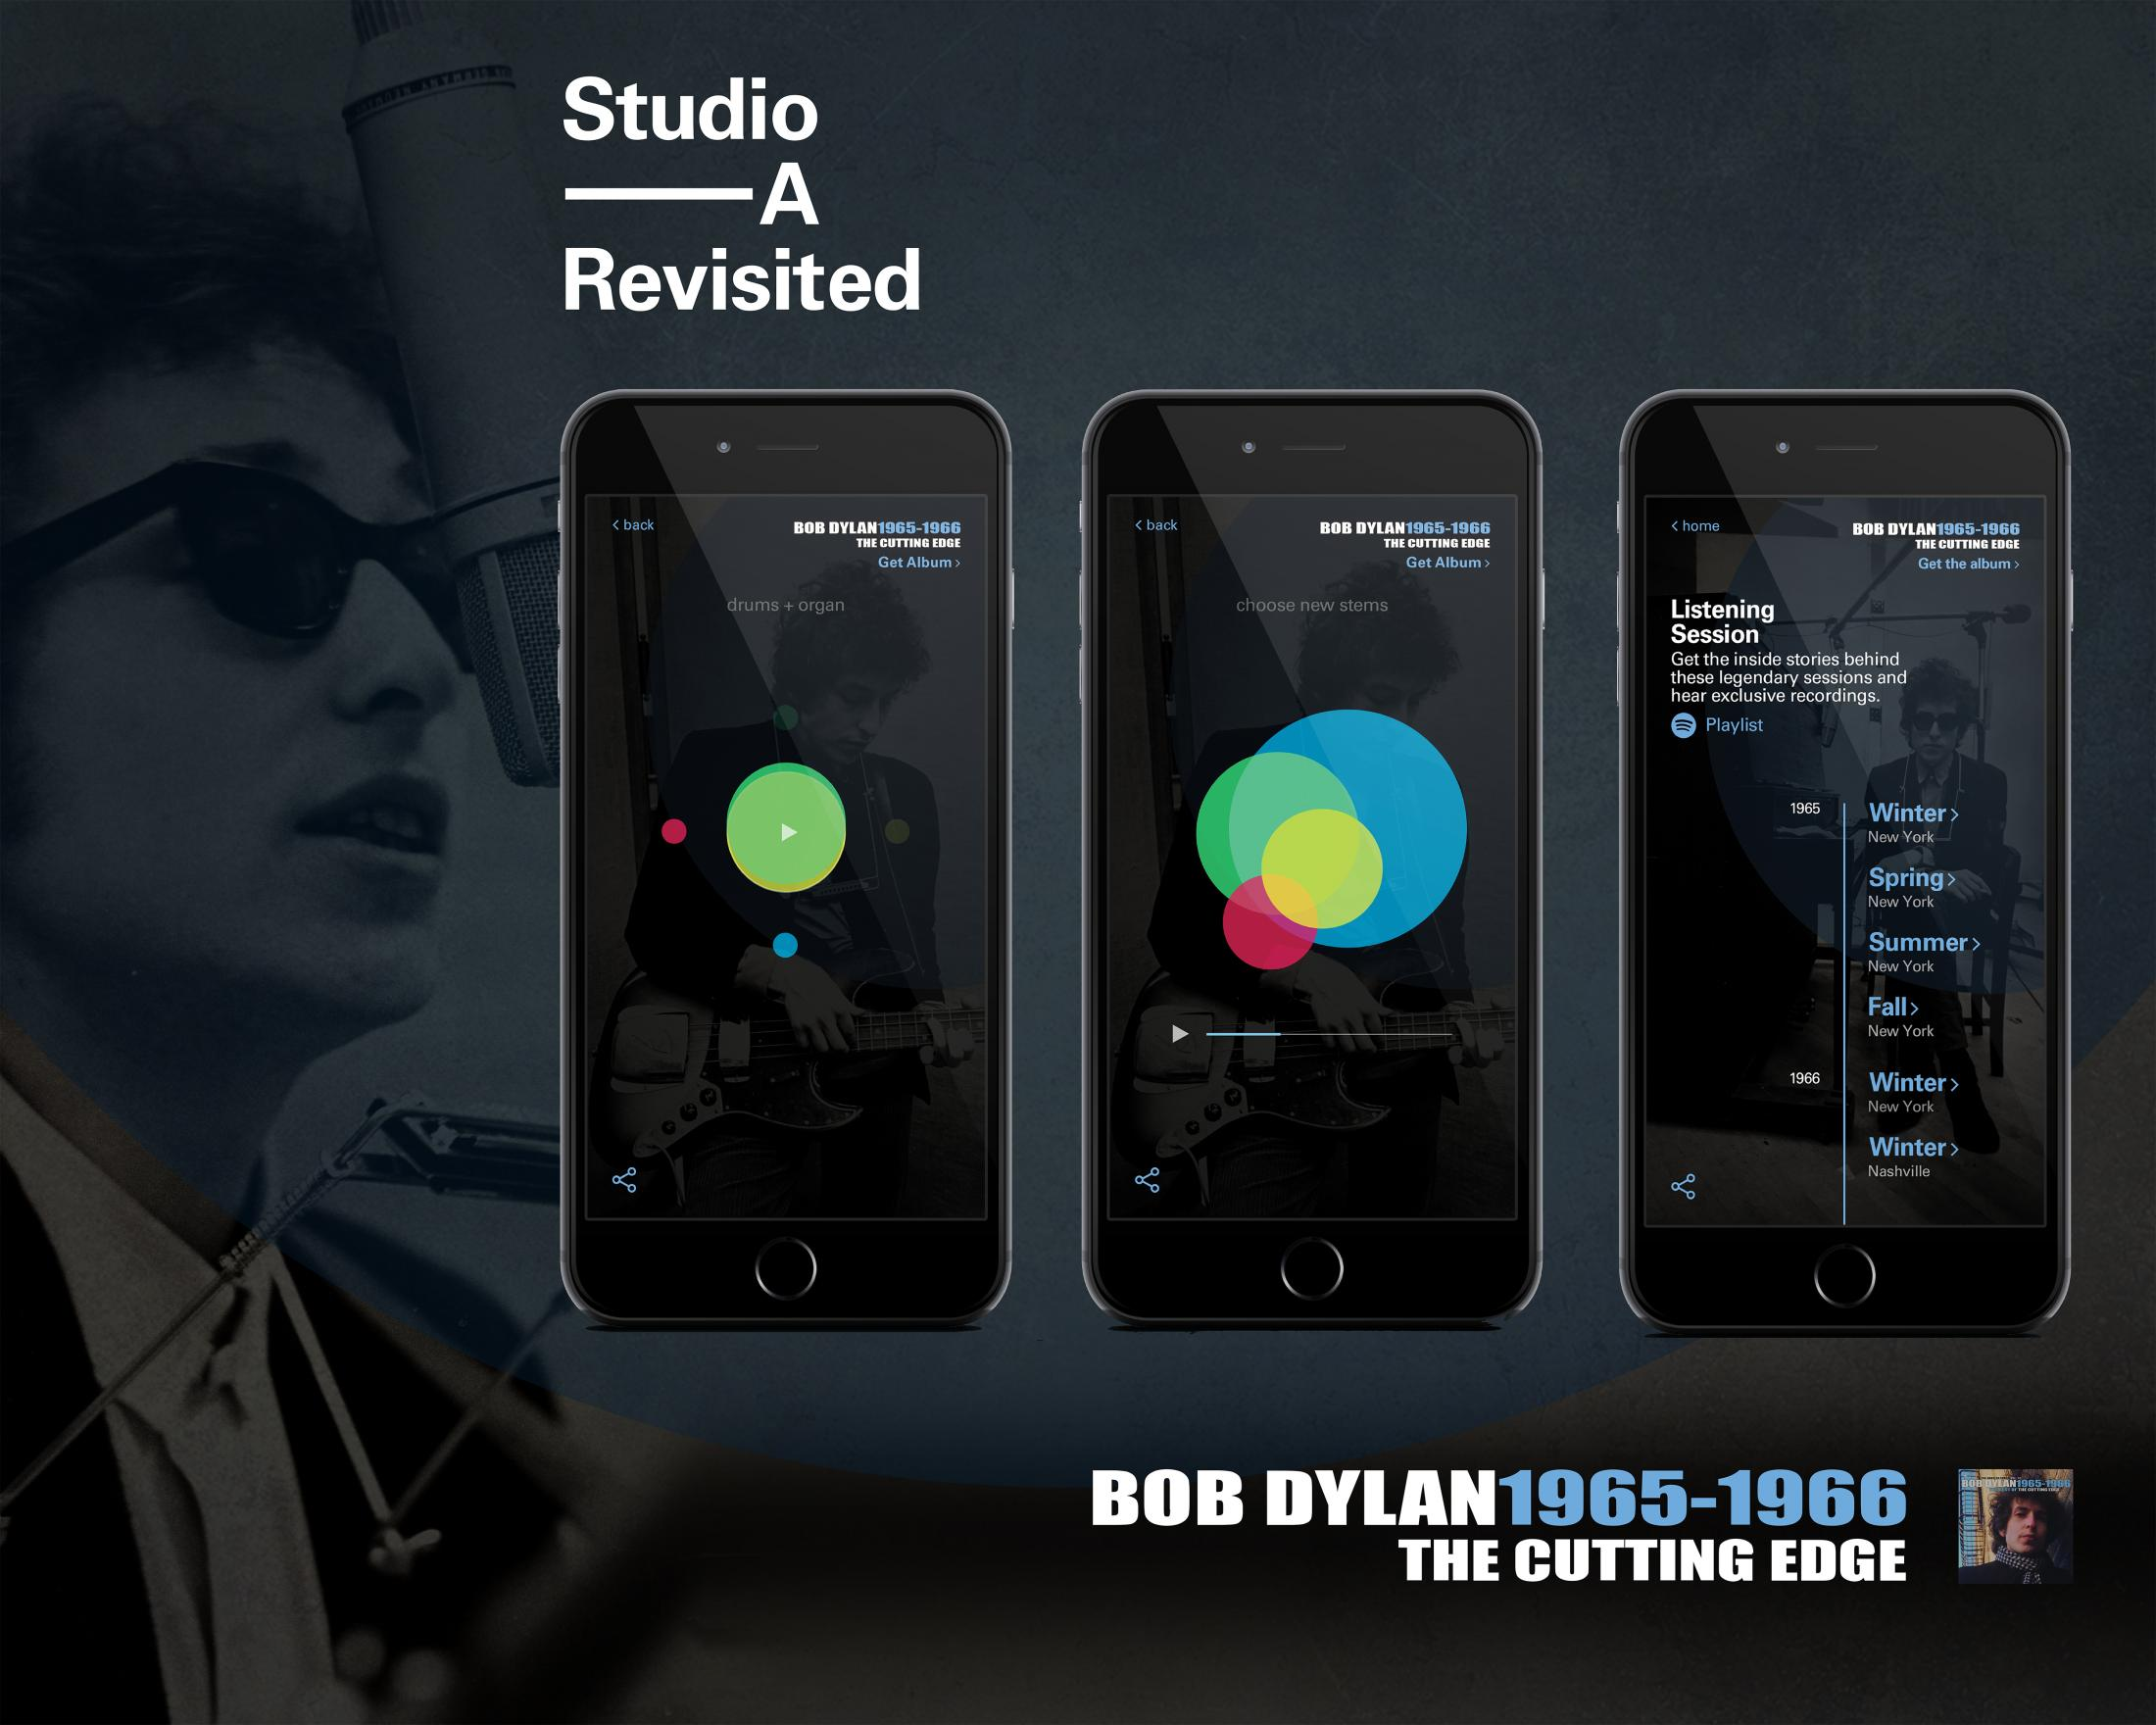 Image Media for Bob Dylan: Studio A Revisited